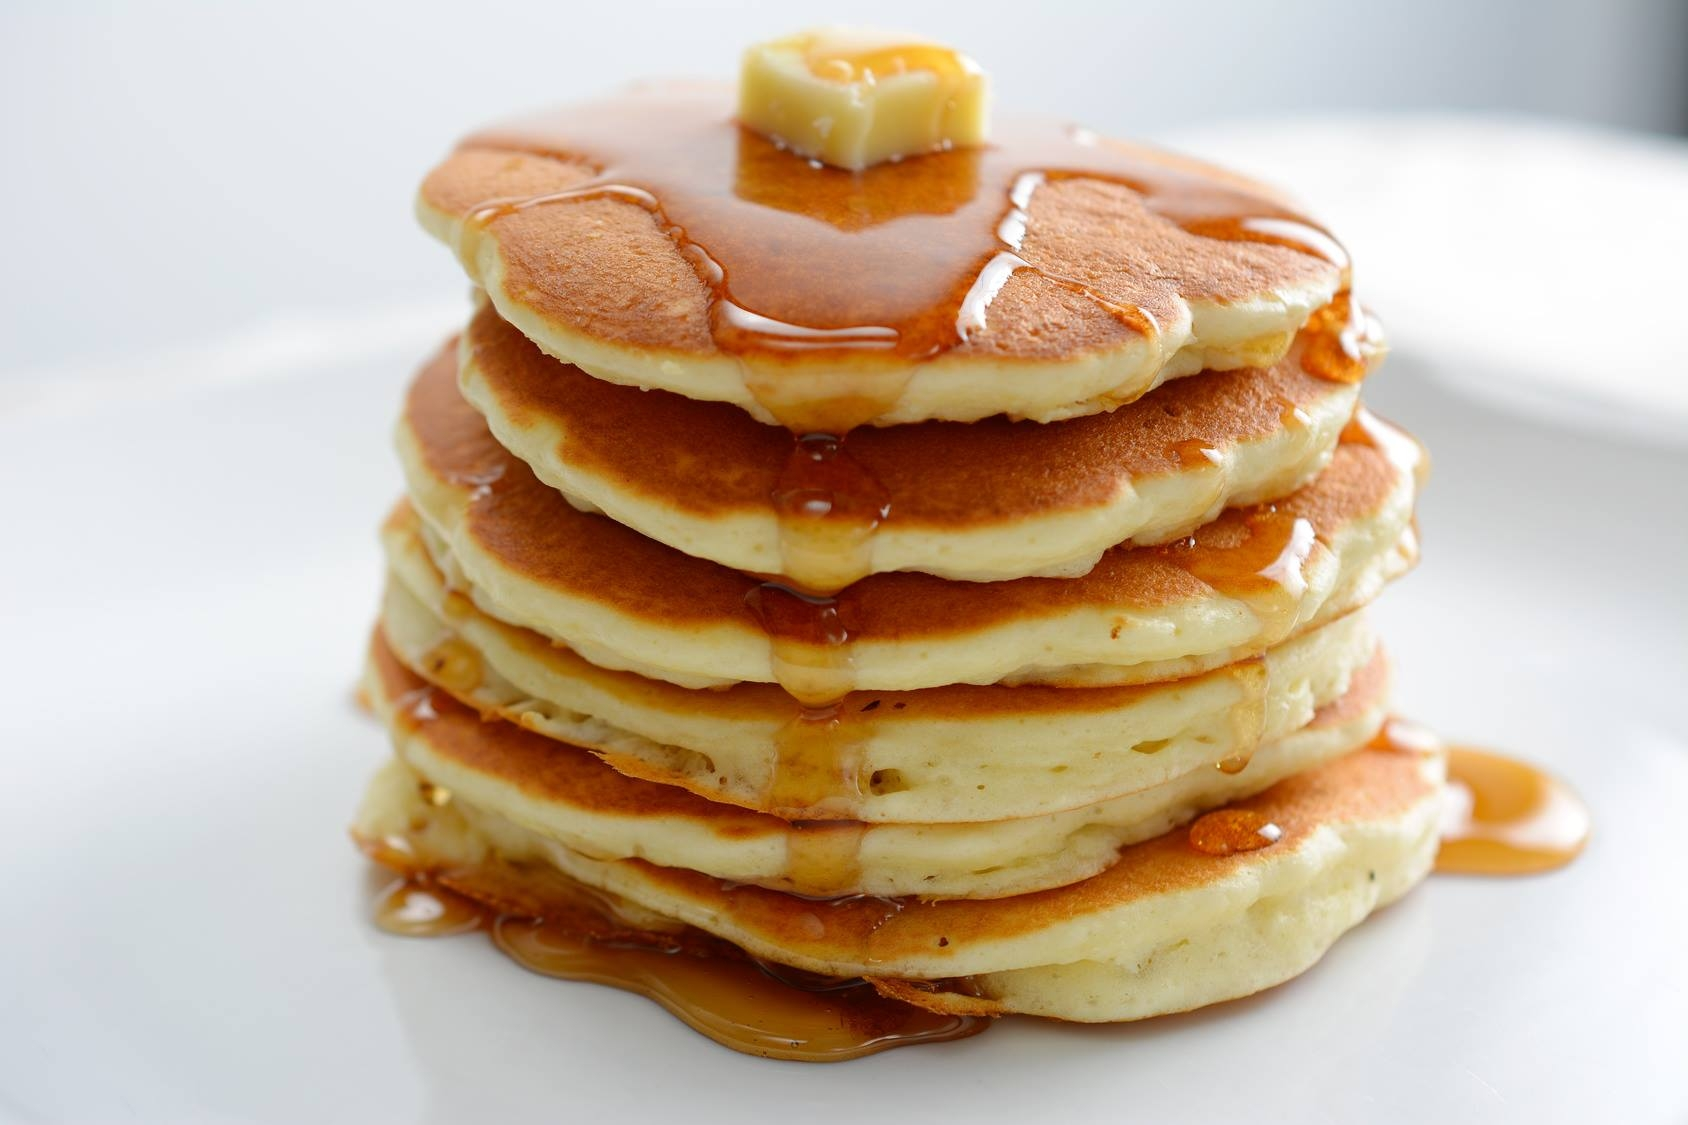 Easter Sunday - April 1, 201811:30am Pancake Brunch